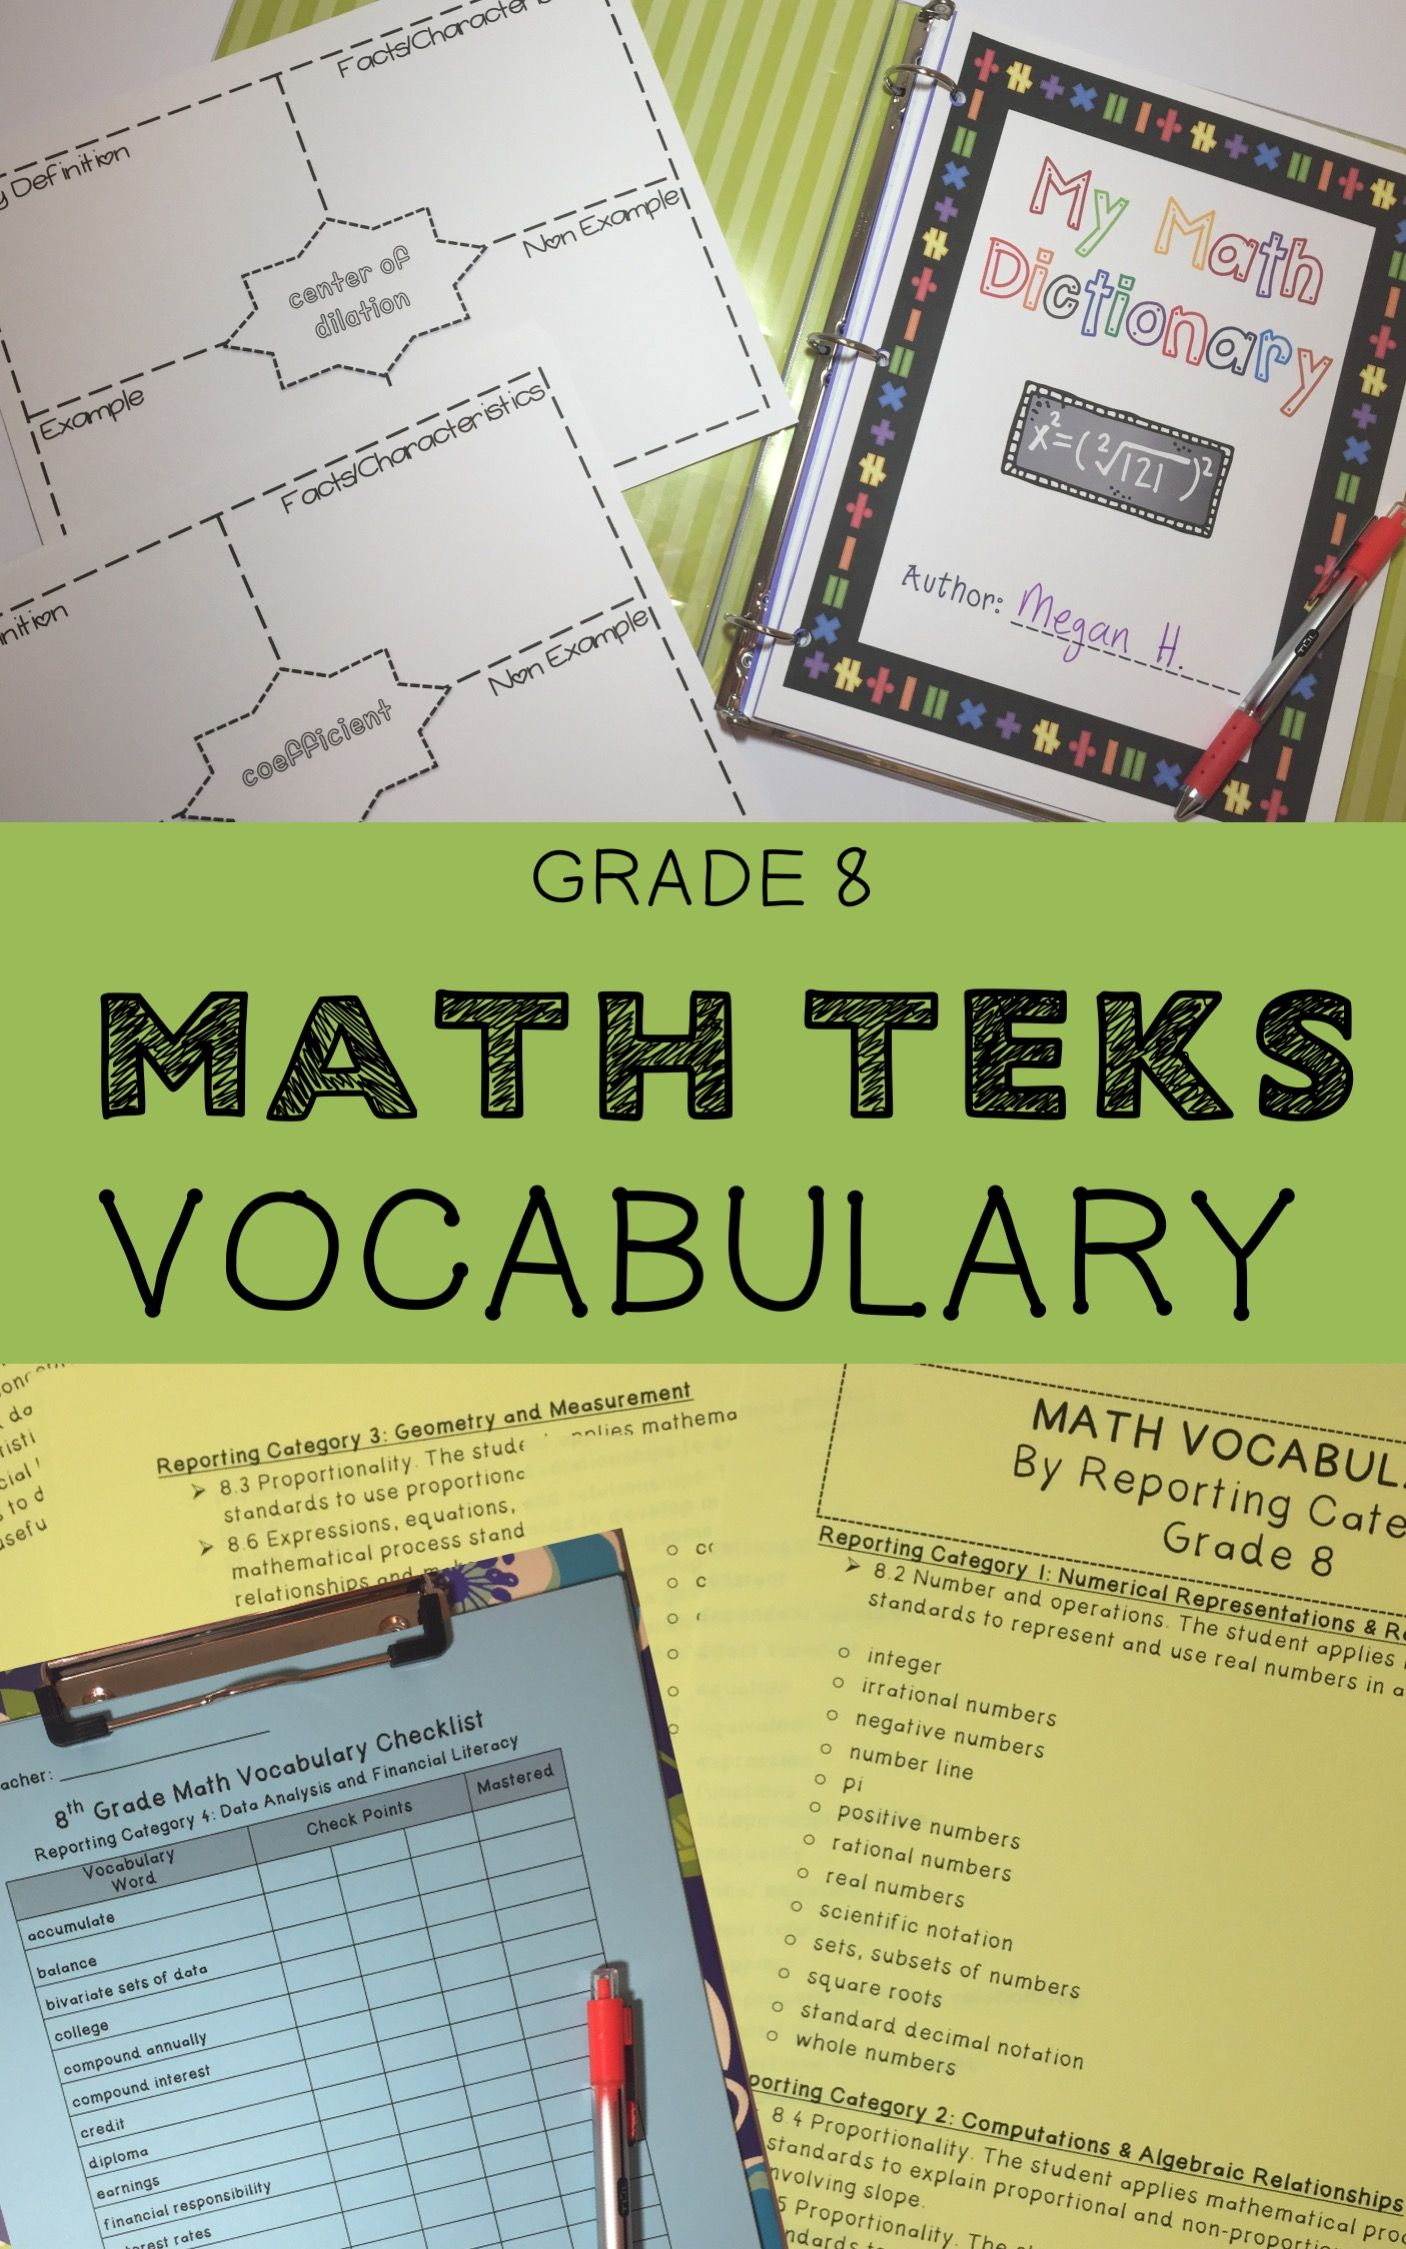 8th Grade Math Vocabulary Teks Aligned Vocabulary By Staar Reporting Categories And Knowledge And Skills Use For Math Math Notebooks Secondary Math Classroom [ 2249 x 1406 Pixel ]